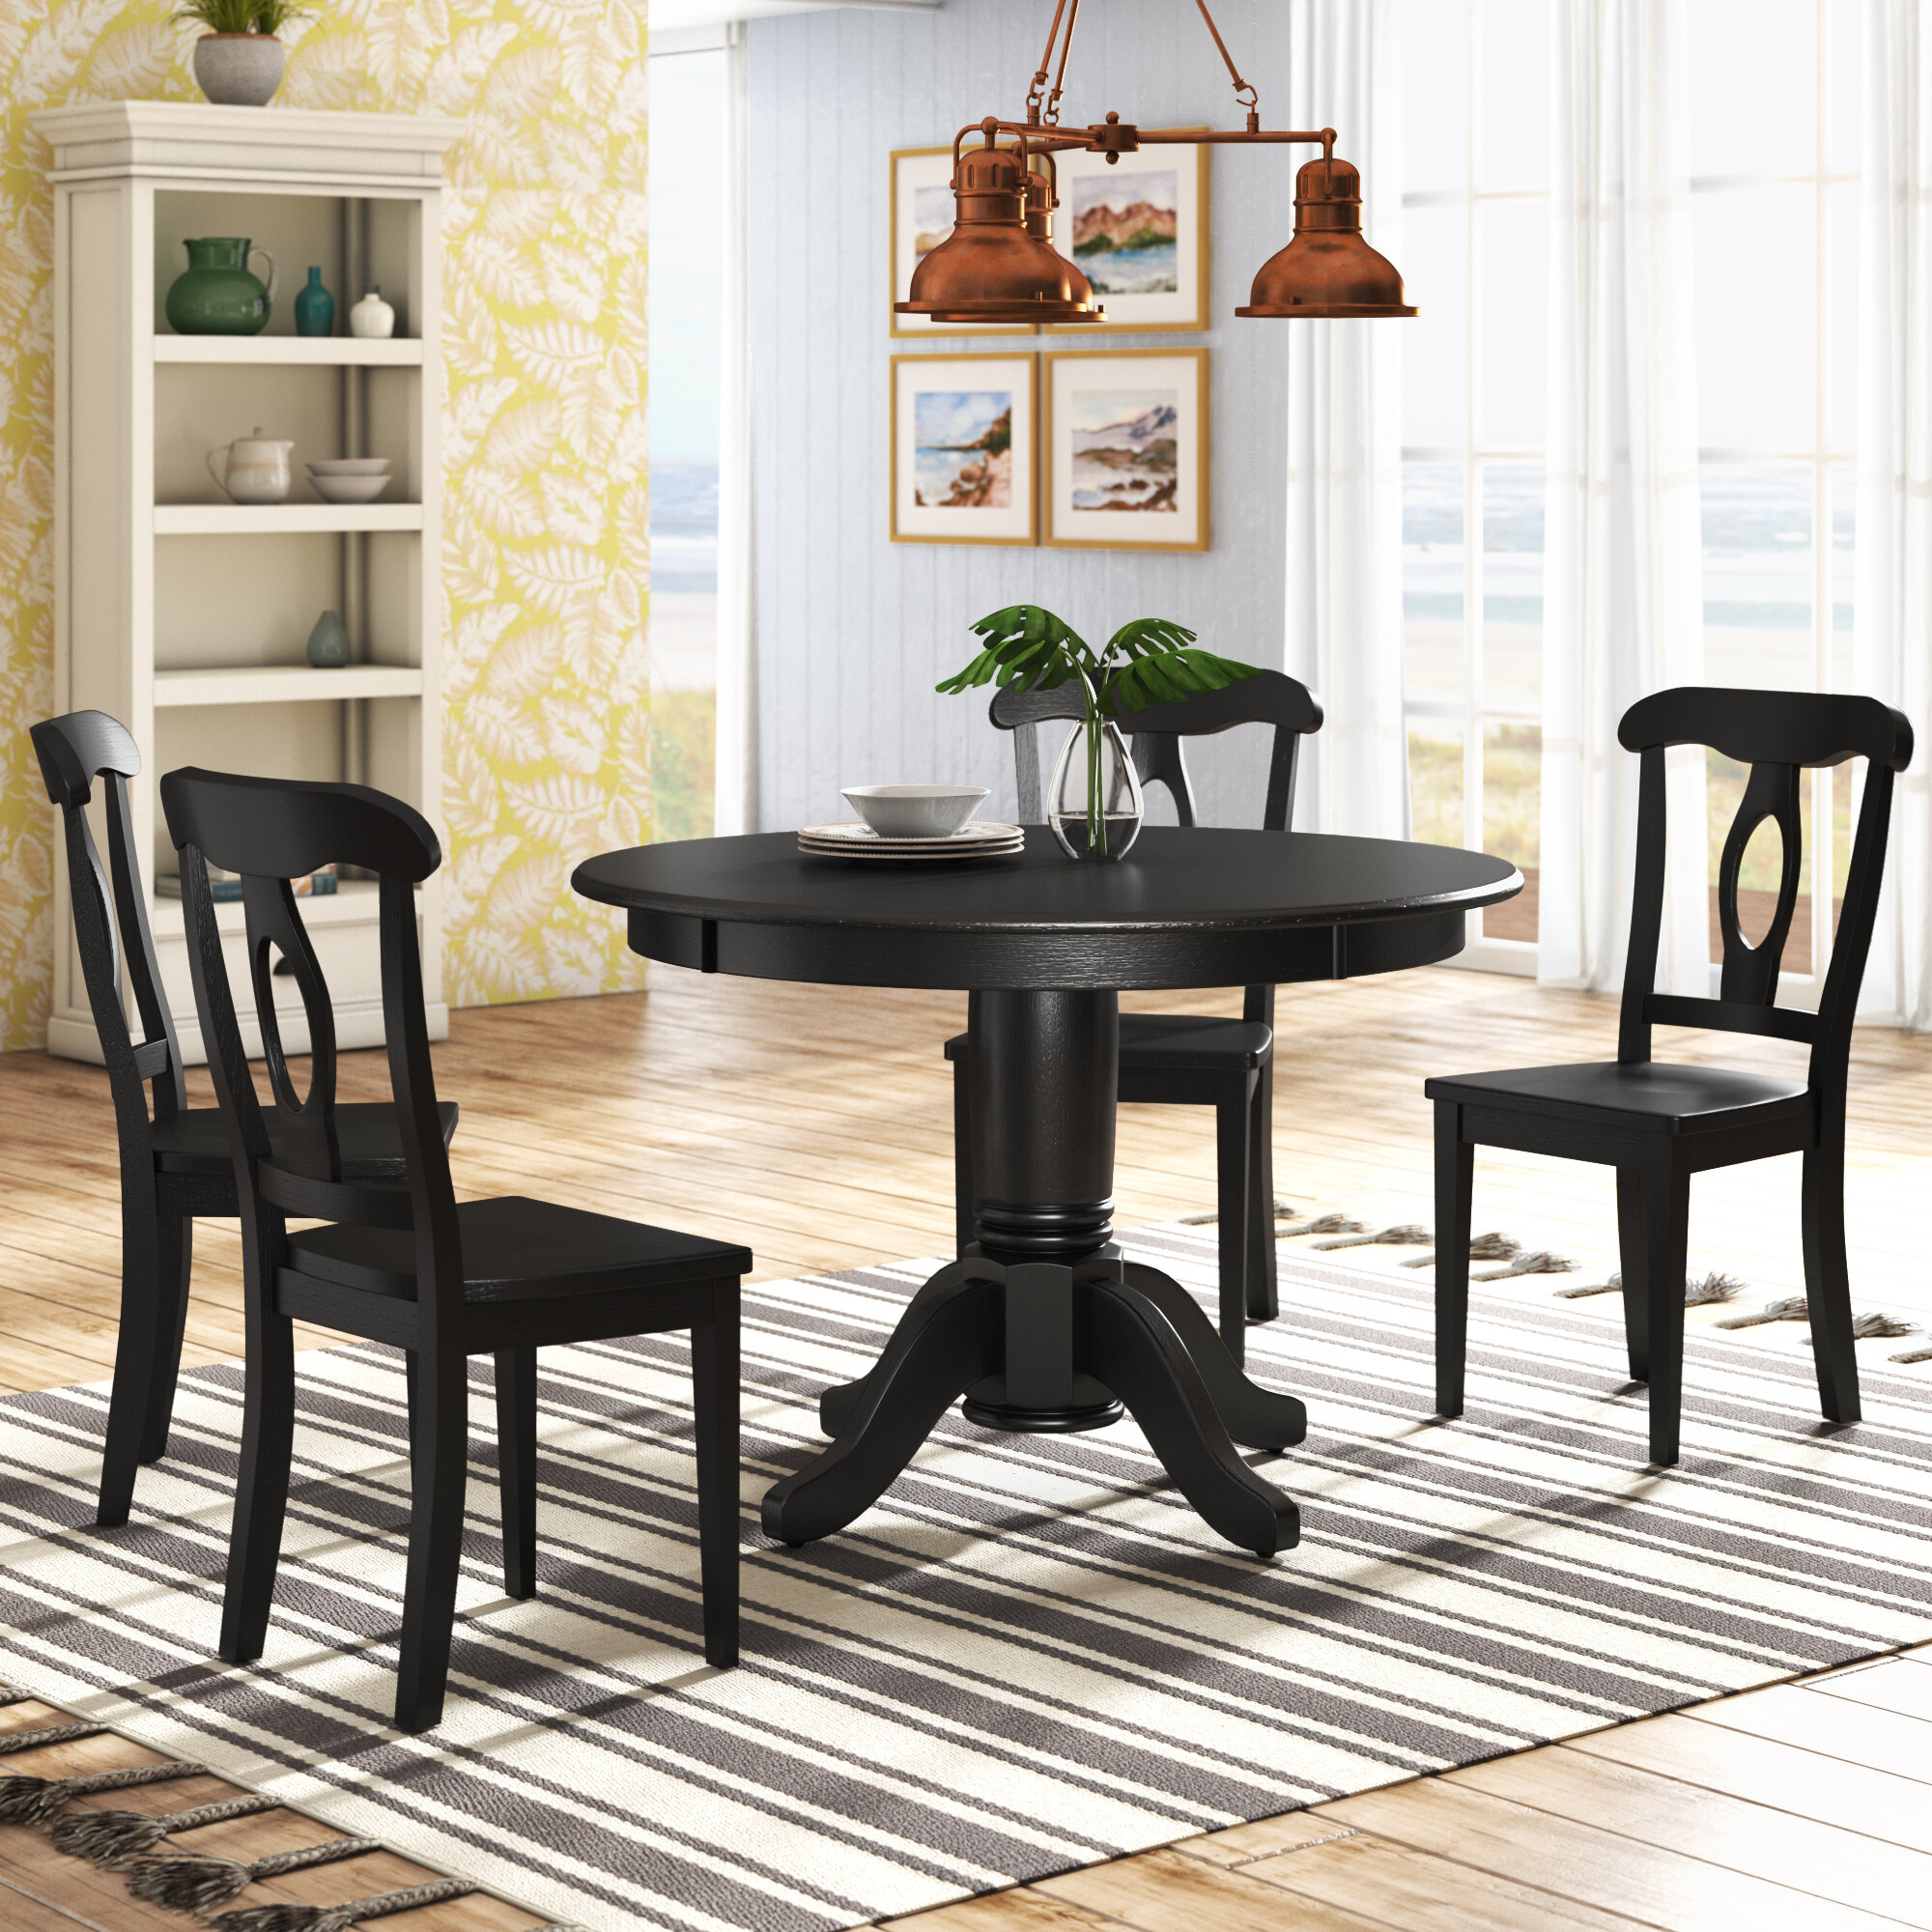 Magnificent Beachcrest Home Gaskell 5 Piece Dining Set Reviews Wayfair Home Interior And Landscaping Ologienasavecom